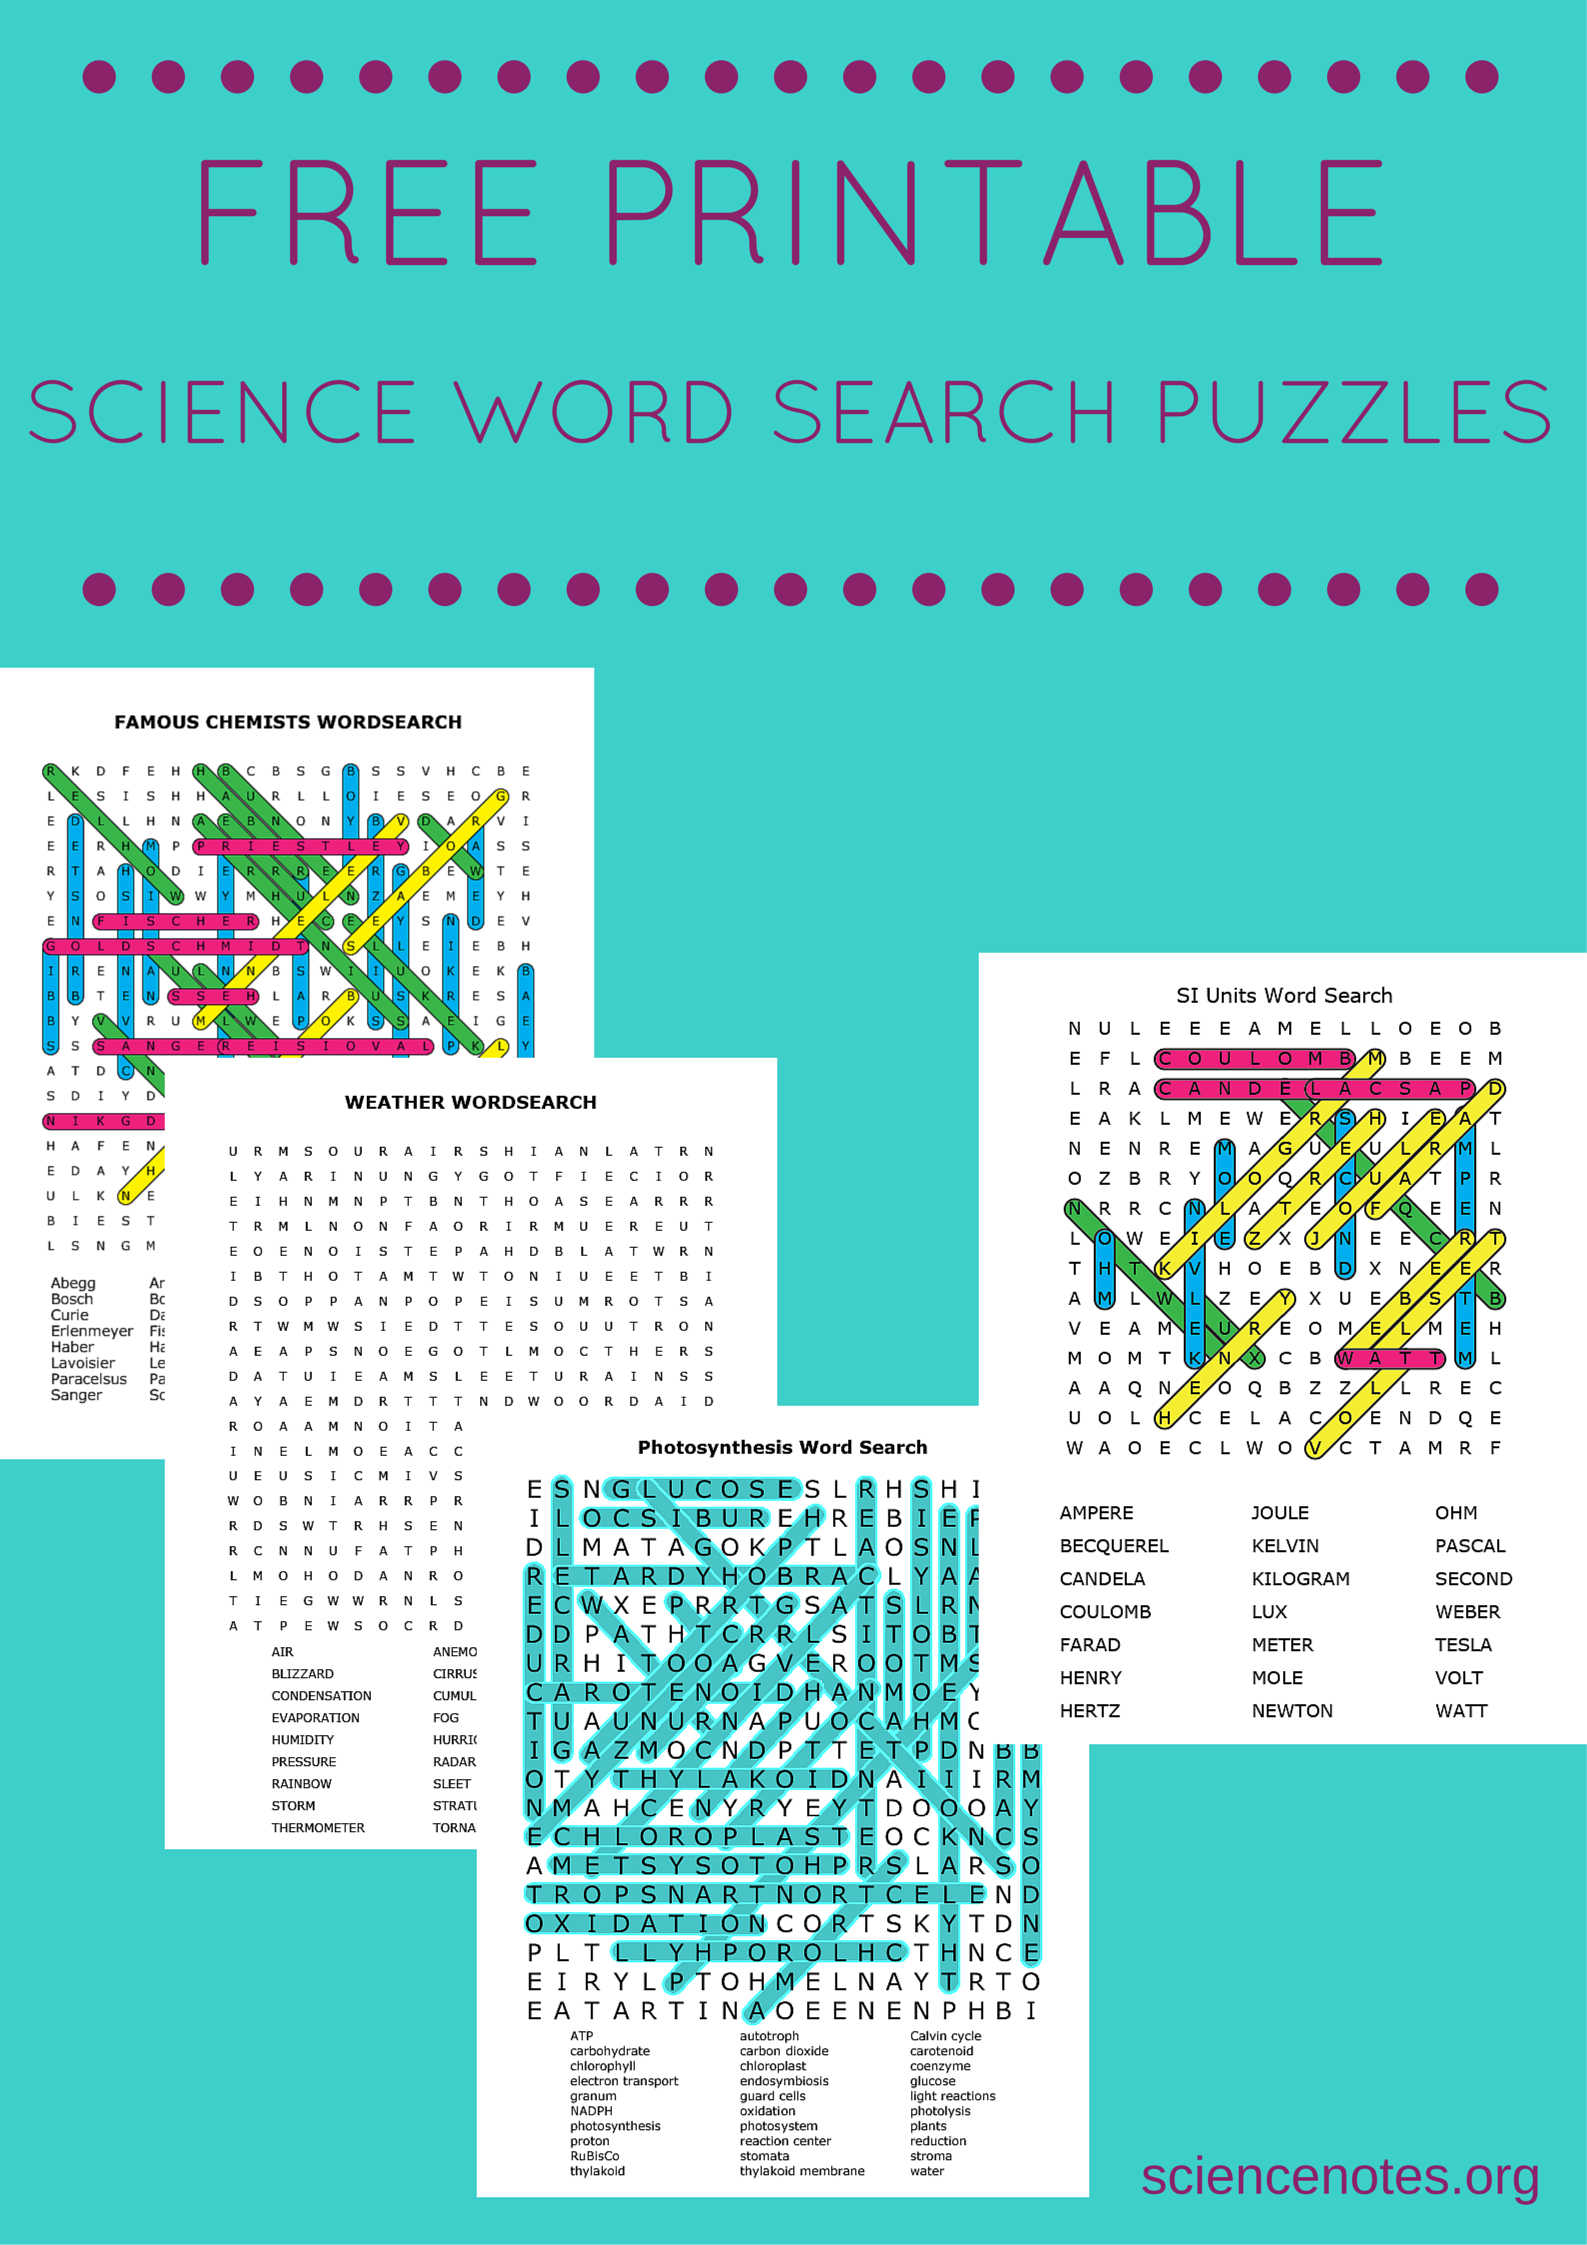 Free Printable Science Word Search Puzzles - Printable Science Puzzle